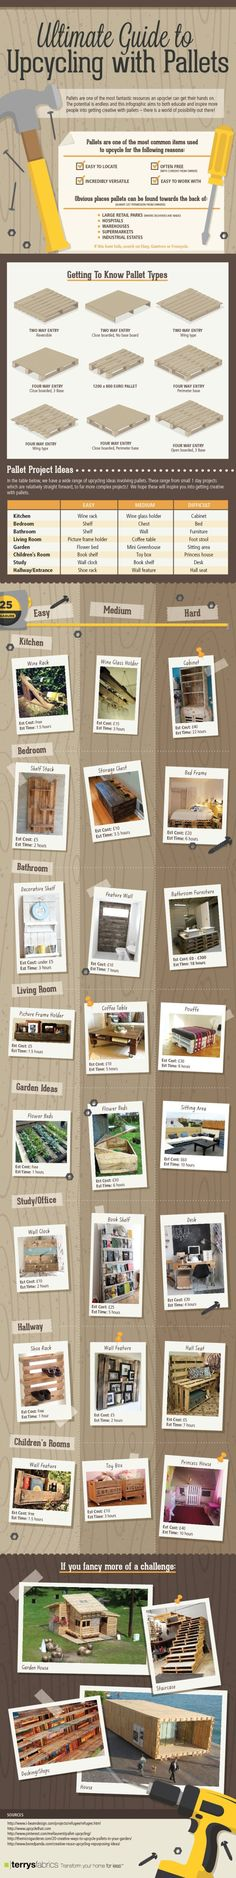 Guide To Upcycling Pallets 1001 Pallets, Recycled wood pallet ideas, DIY pallet Projects ! - Part 181001 Pallets, Recycled wood pallet ideas, DIY pallet Projects ! - Part 18 Pallet Crafts, Diy Pallet Projects, Wood Projects, Woodworking Projects, Woodworking Techniques, Woodworking Blueprints, Recycling Projects, Learn Woodworking, Garden Projects